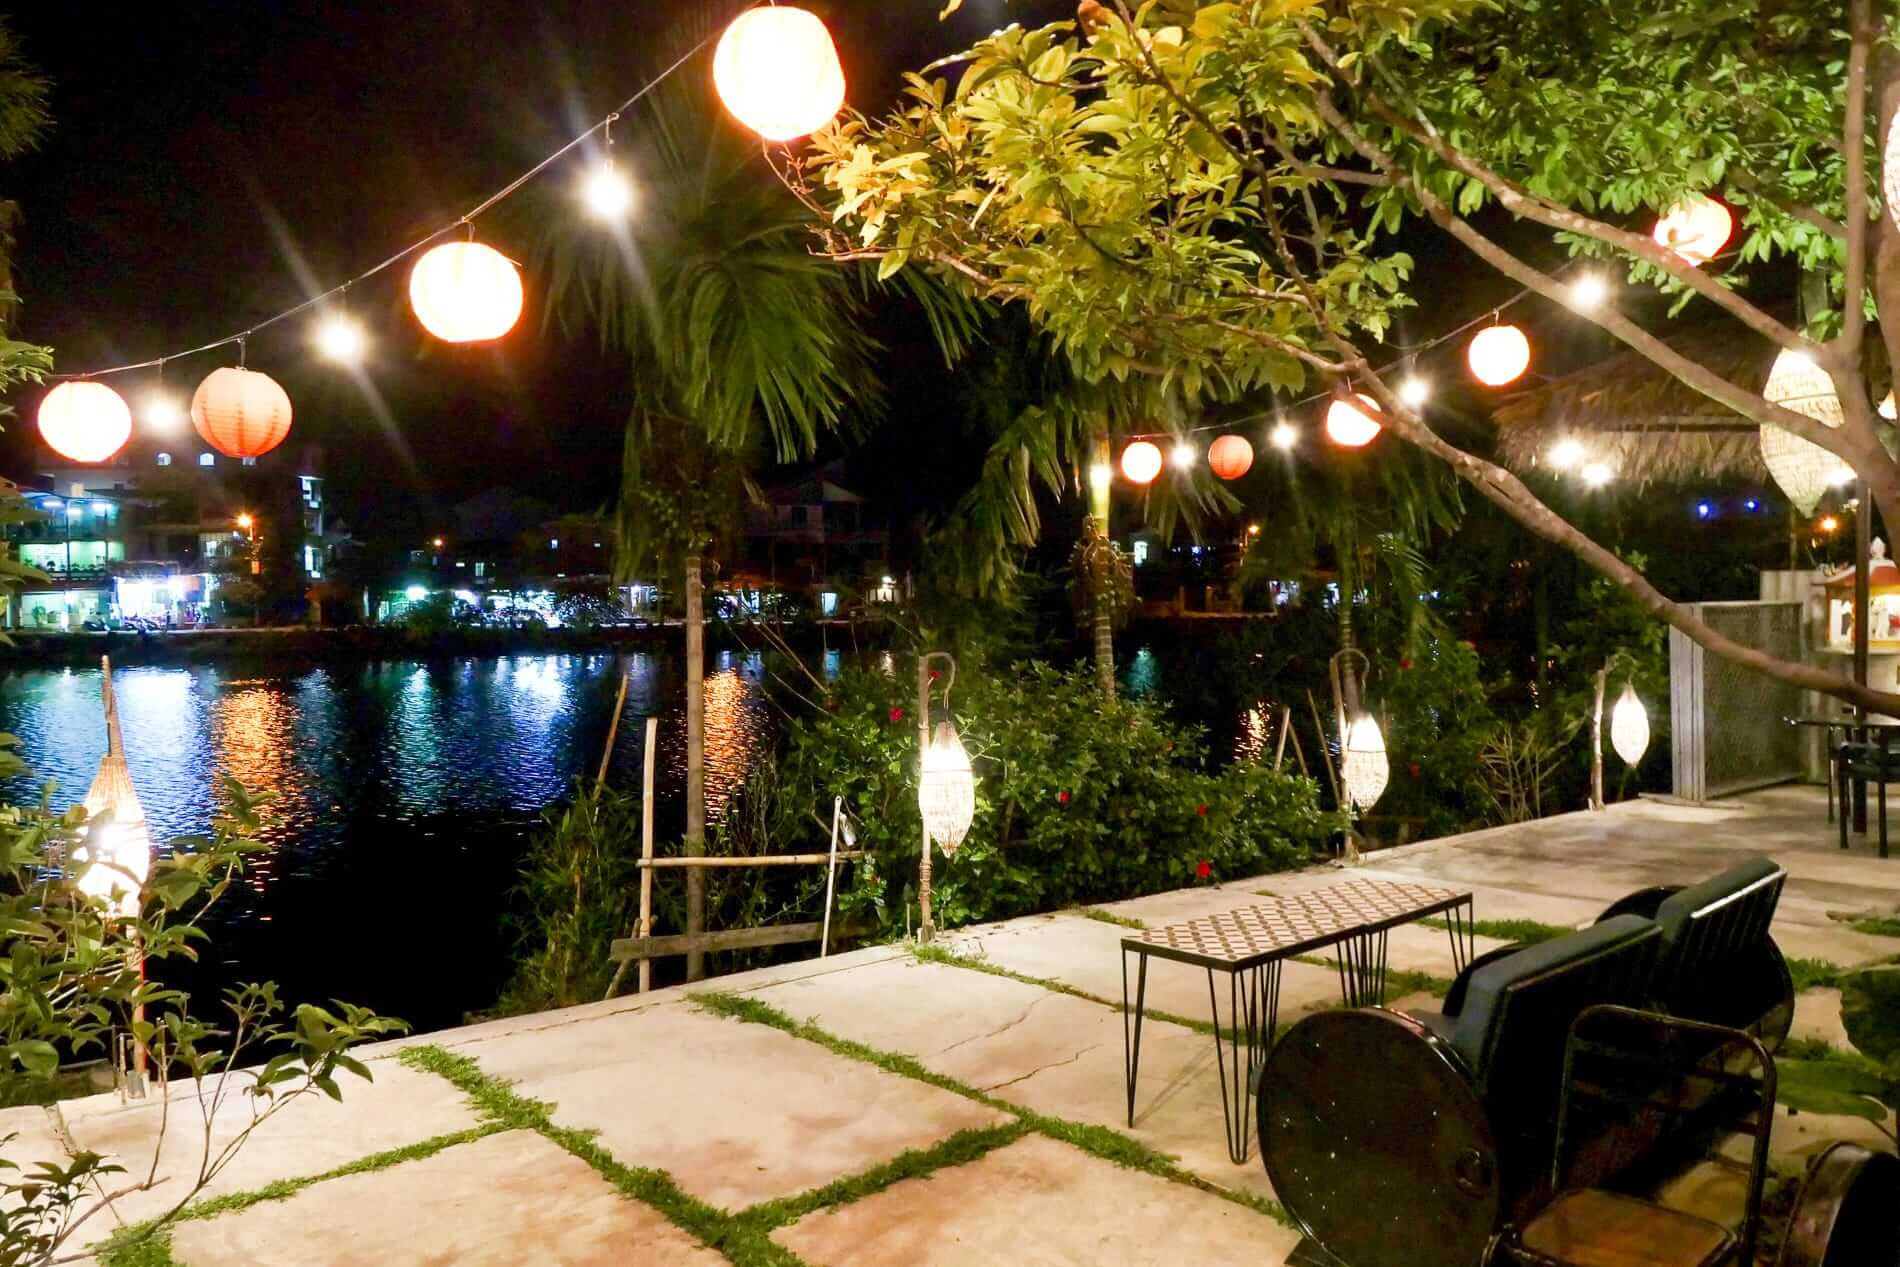 A wonderful night view from Hue Riverside Villa